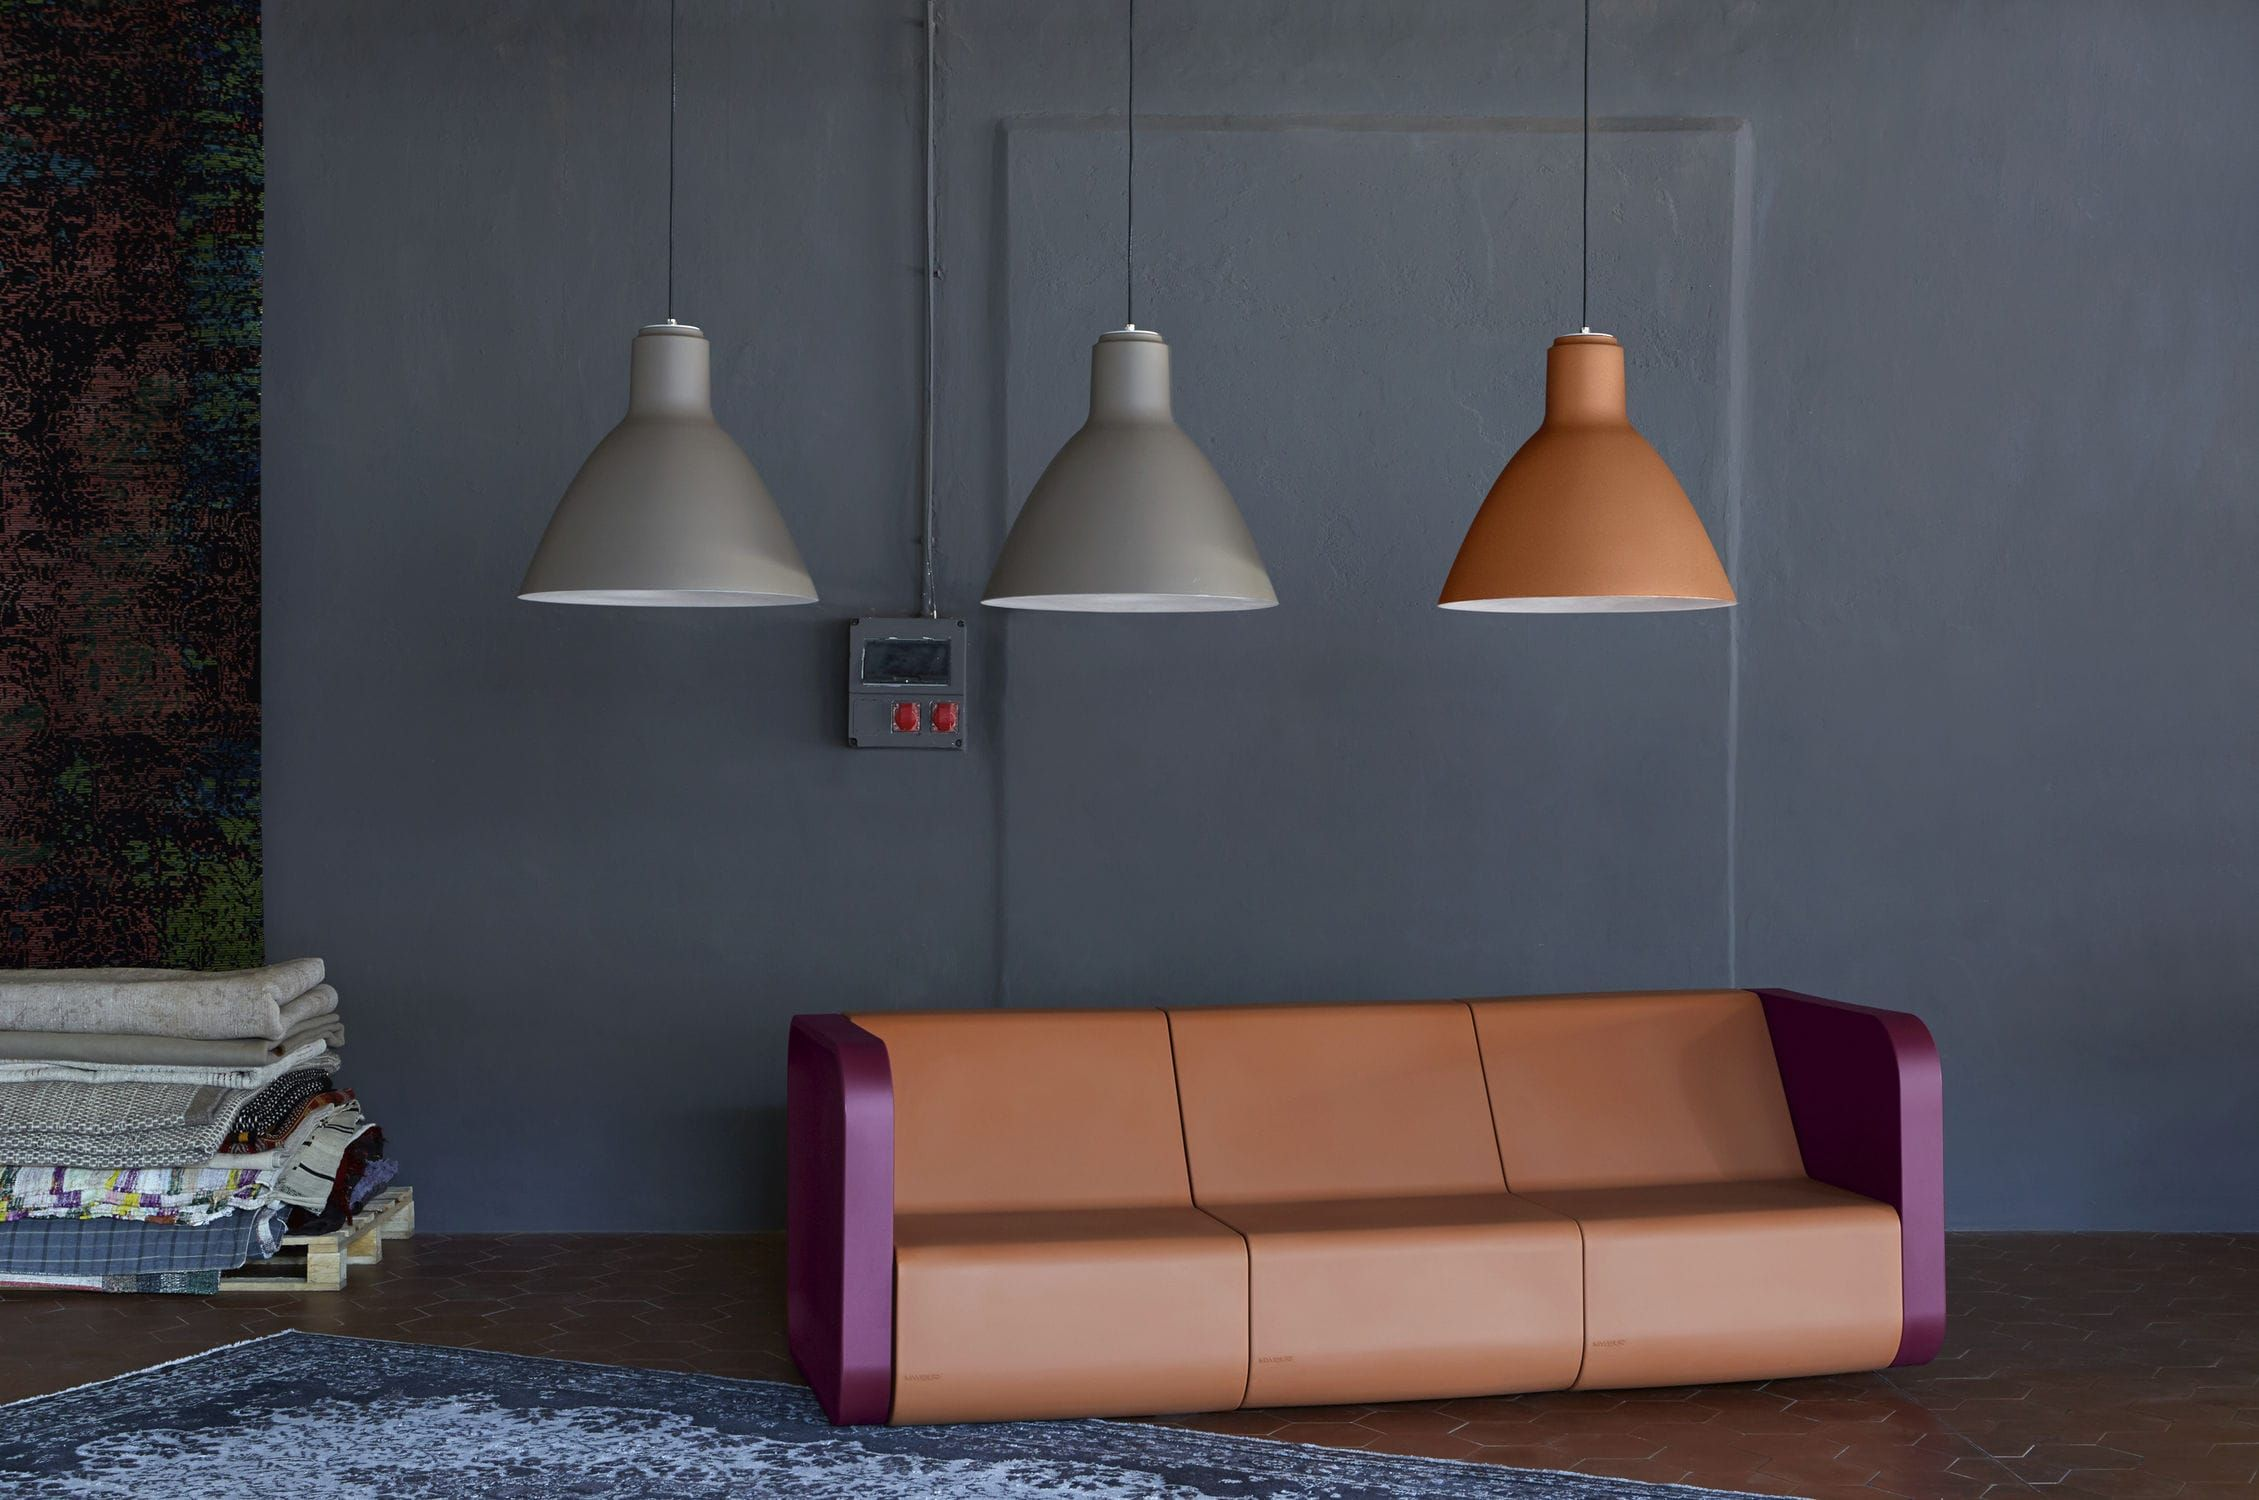 Lampe suspension / design industriel / de jardin / en plastique - BELL - Myyour